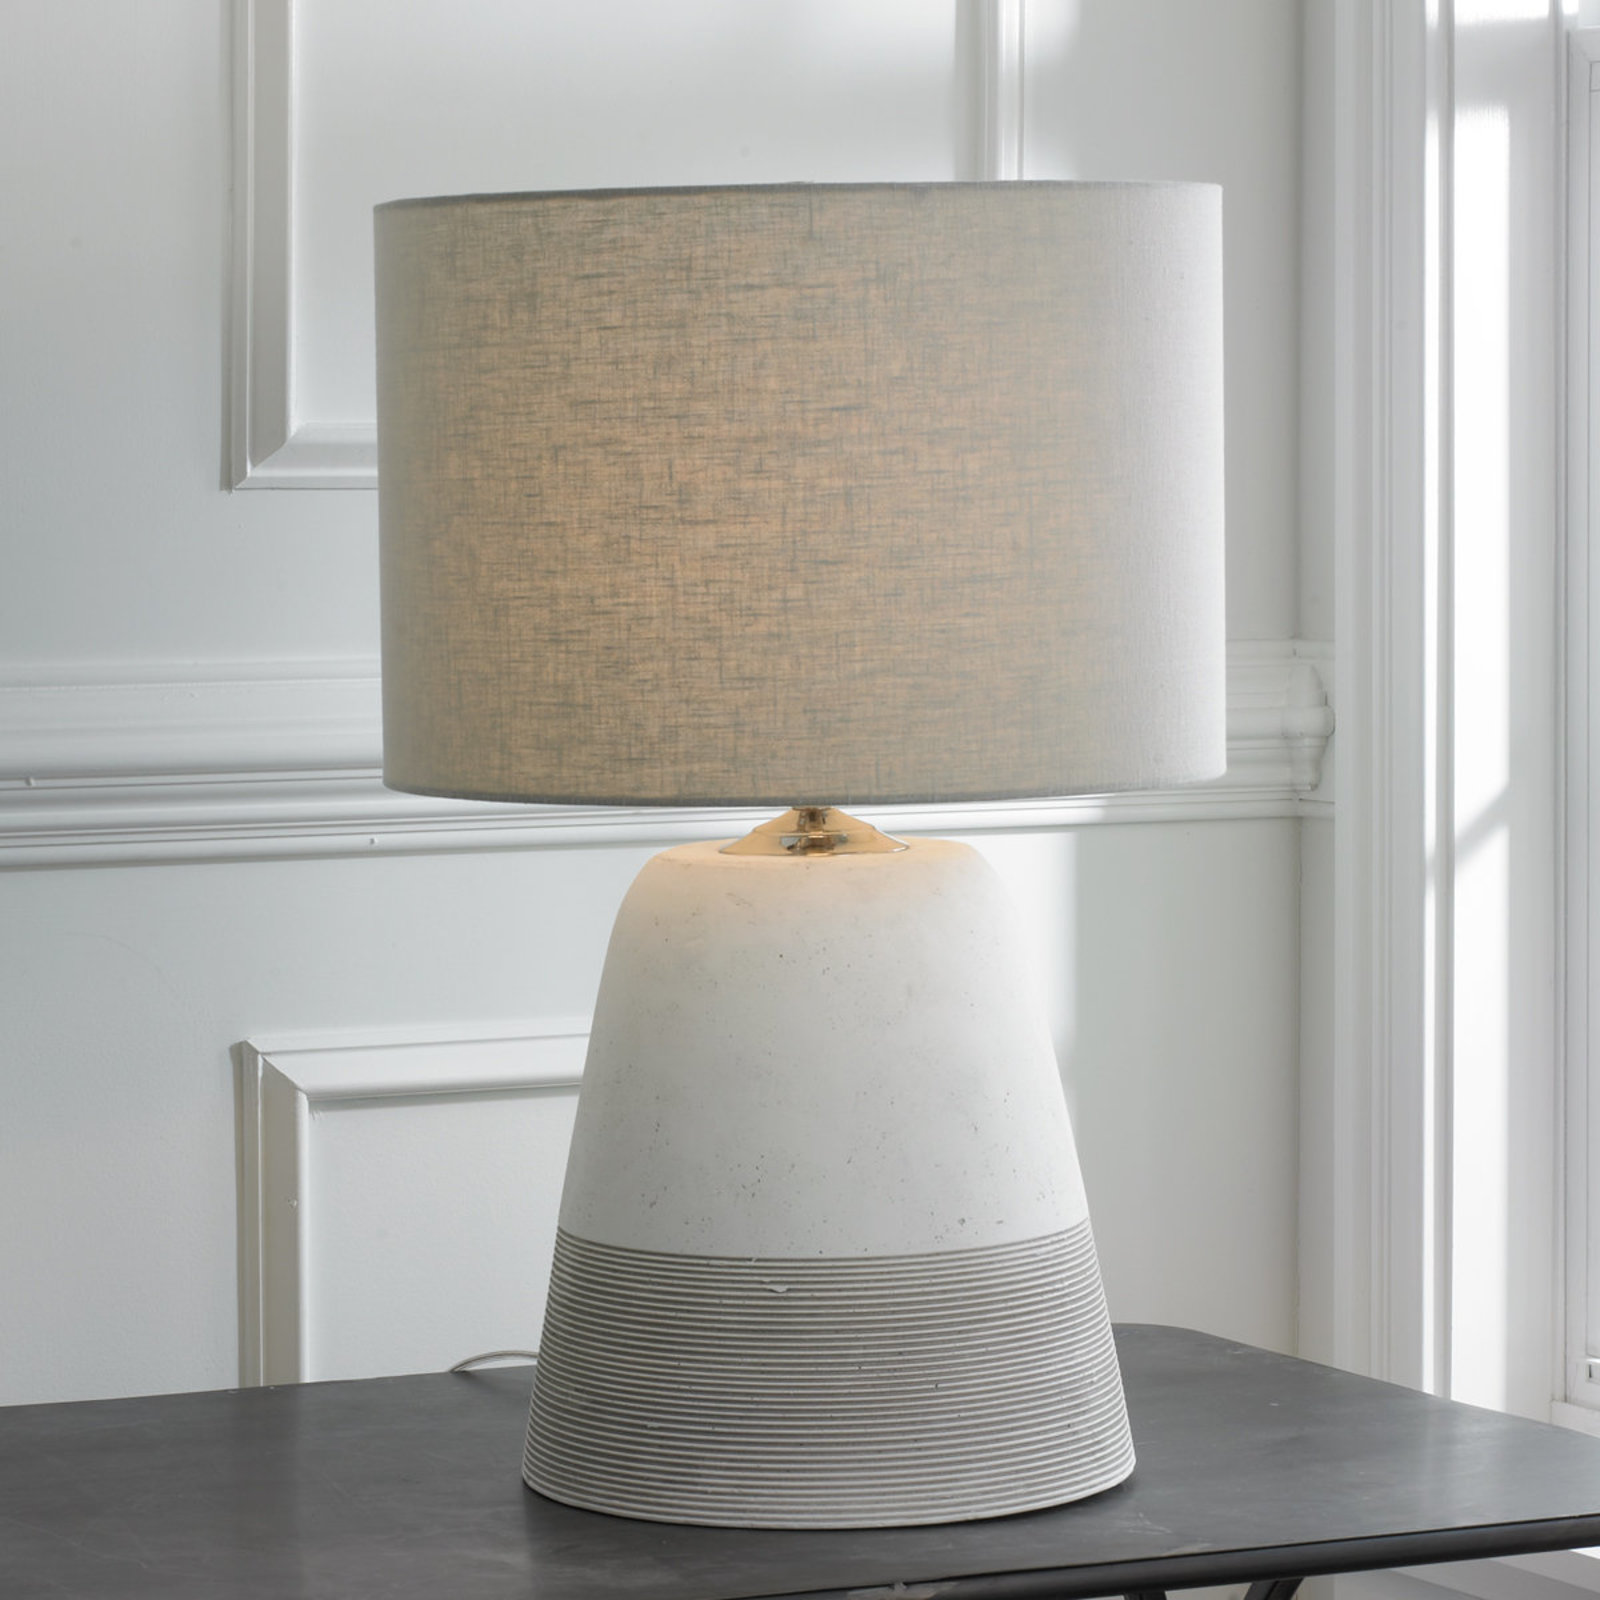 grooved concrete table lamp small shades light mini accent lamps gray square mosaic ikea floating shelves bar and chairs gold glass side round outdoor tablecloth shelf patio cover